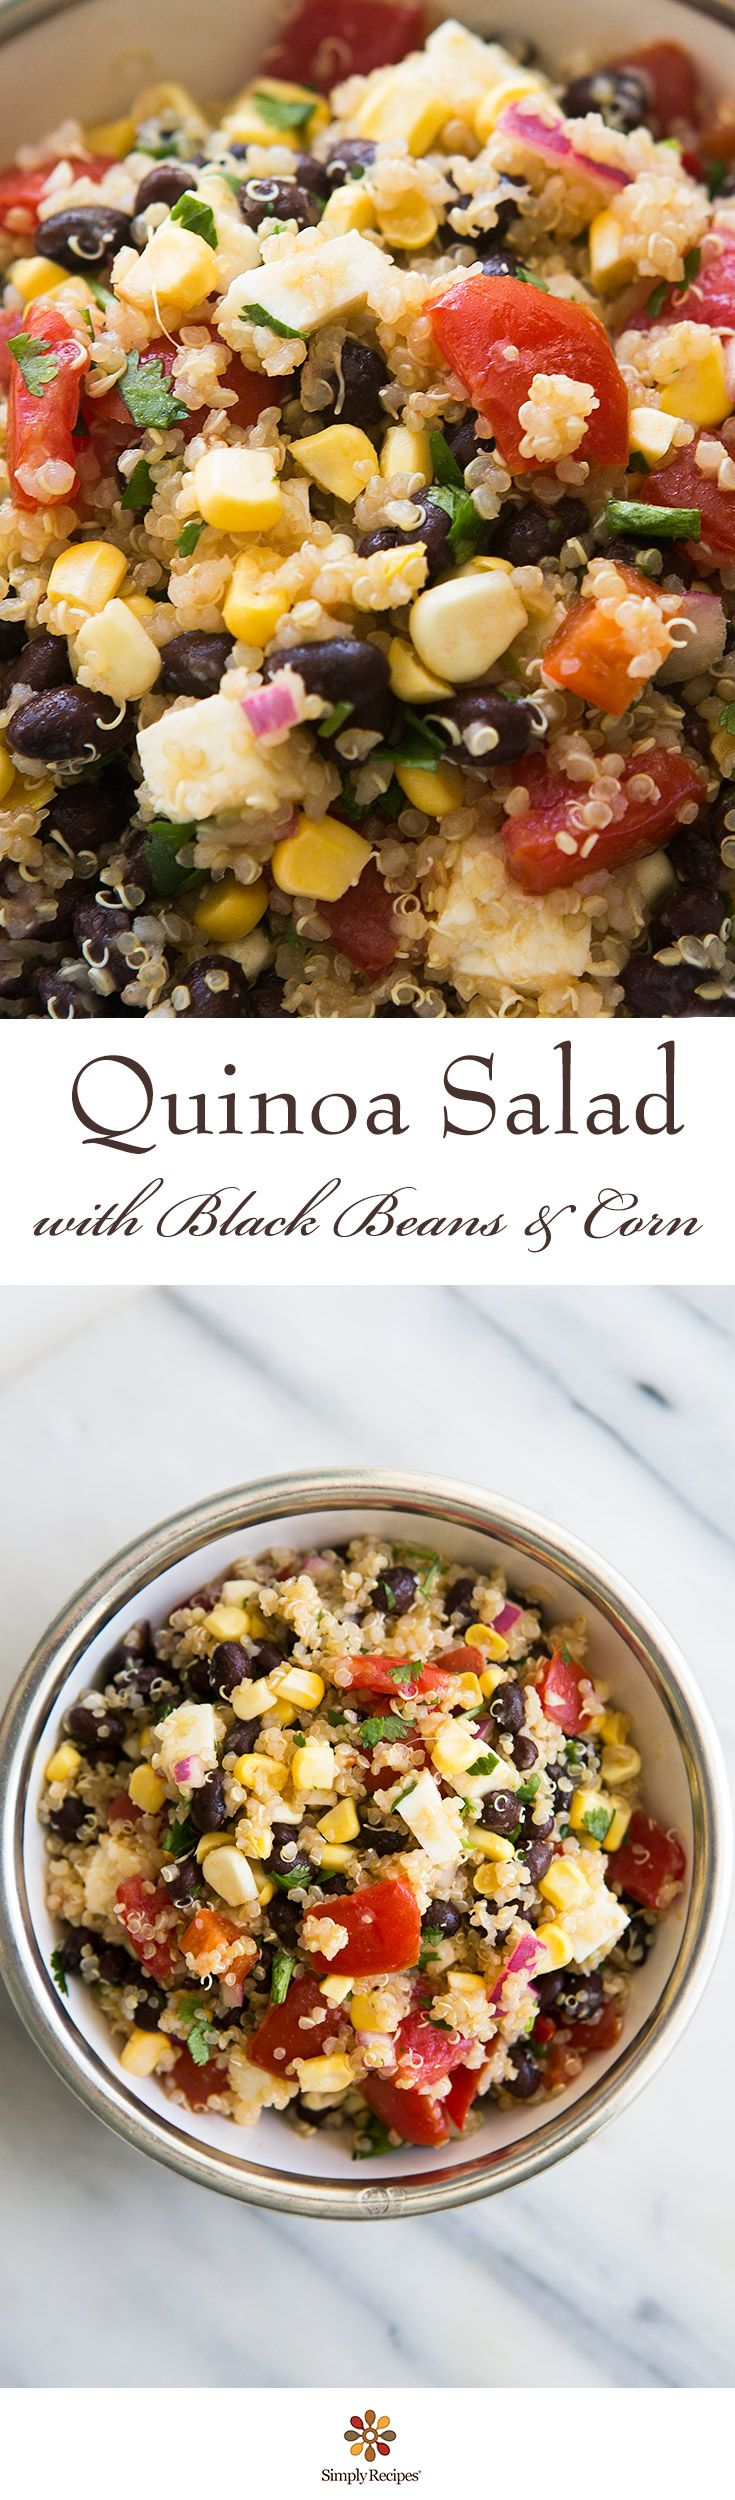 Mexican Quinoa Salad with Black Beans, Corn, and Tomatoes